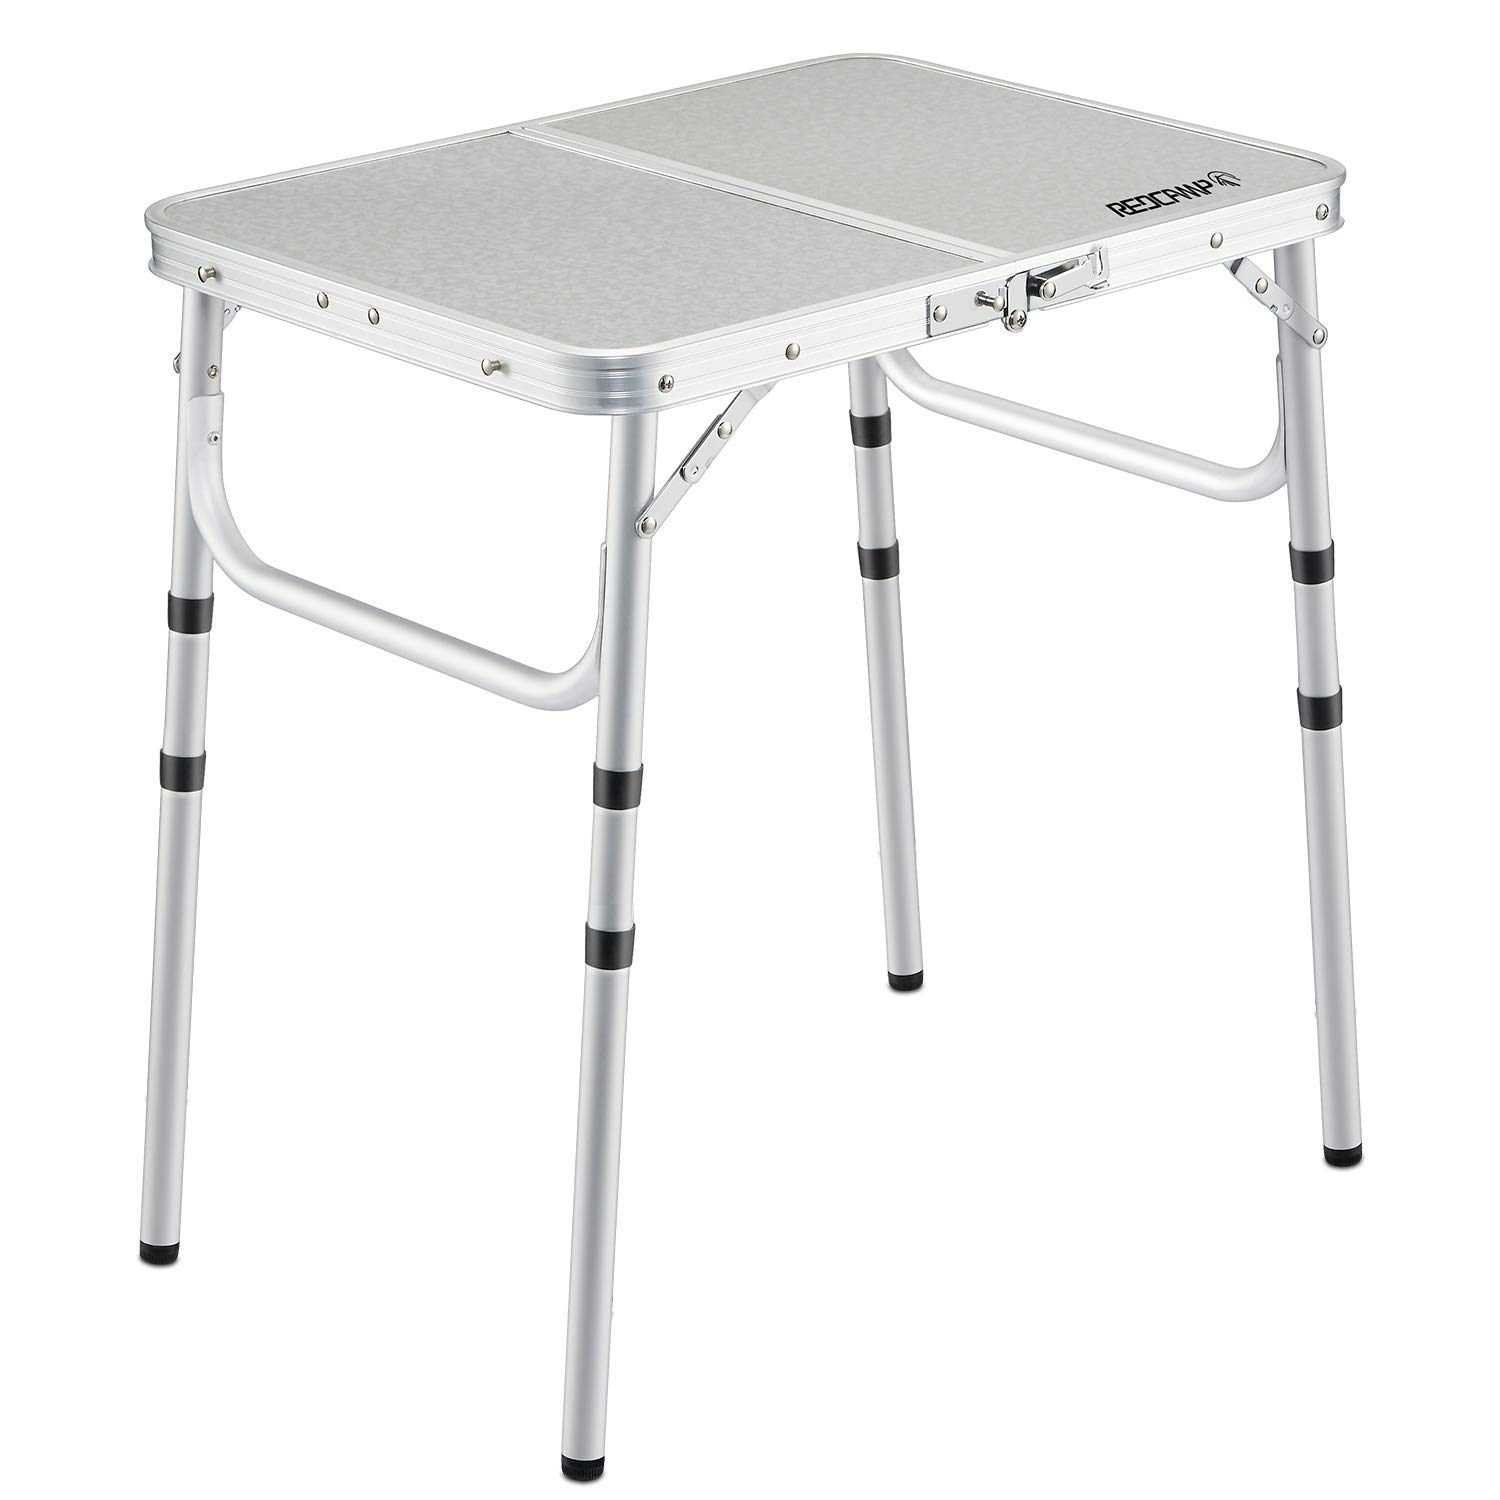 REDCAMP Small Folding Table 2 Foot, Adjustable Height Lightweight Portable Aluminum Camping Table for Picnic Beach Outdoor Indoor, White 24 x 16 inch (3 Heights) by REDCAMP